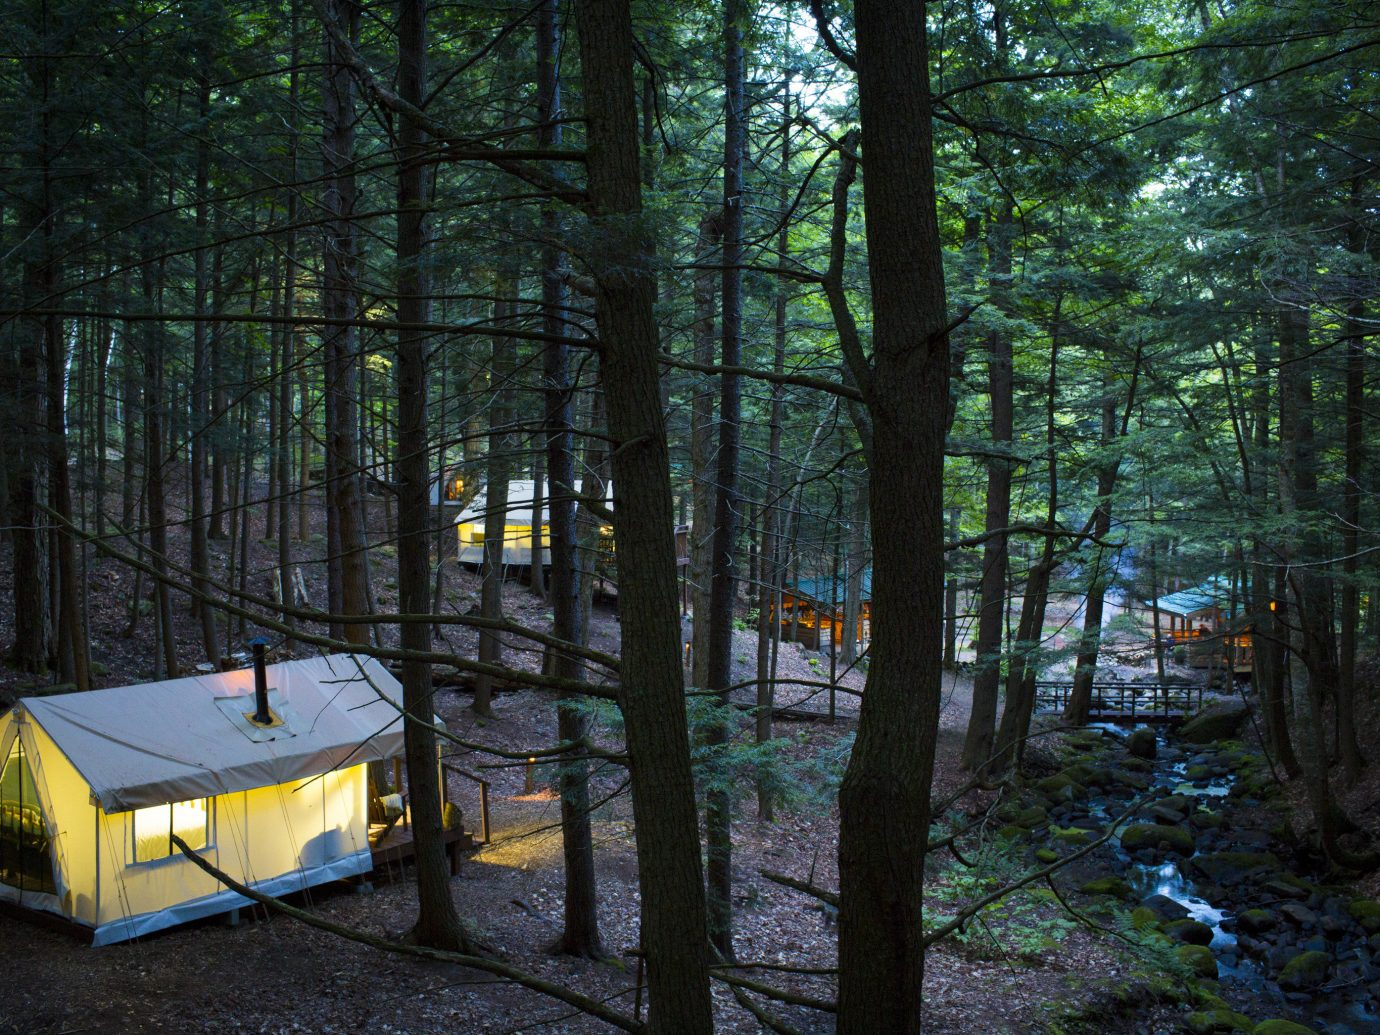 Glamping Outdoors + Adventure Weekend Getaways tree Nature outdoor Forest woodland plant wilderness leaf water sunlight biome state park old growth forest Winter landscape grove trail wood evening area wooded